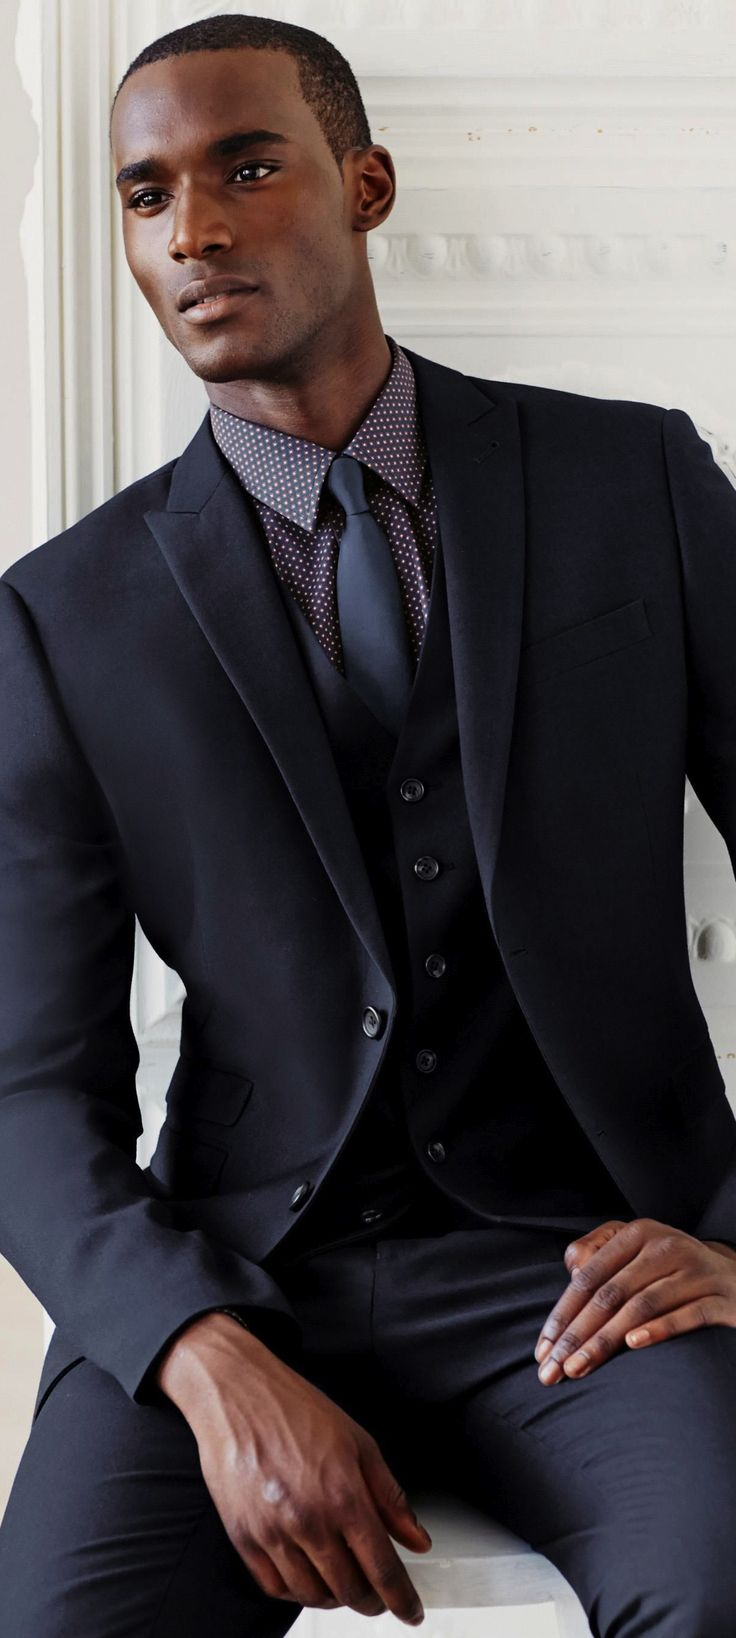 royal violet #menswear #simplydapper #stylish